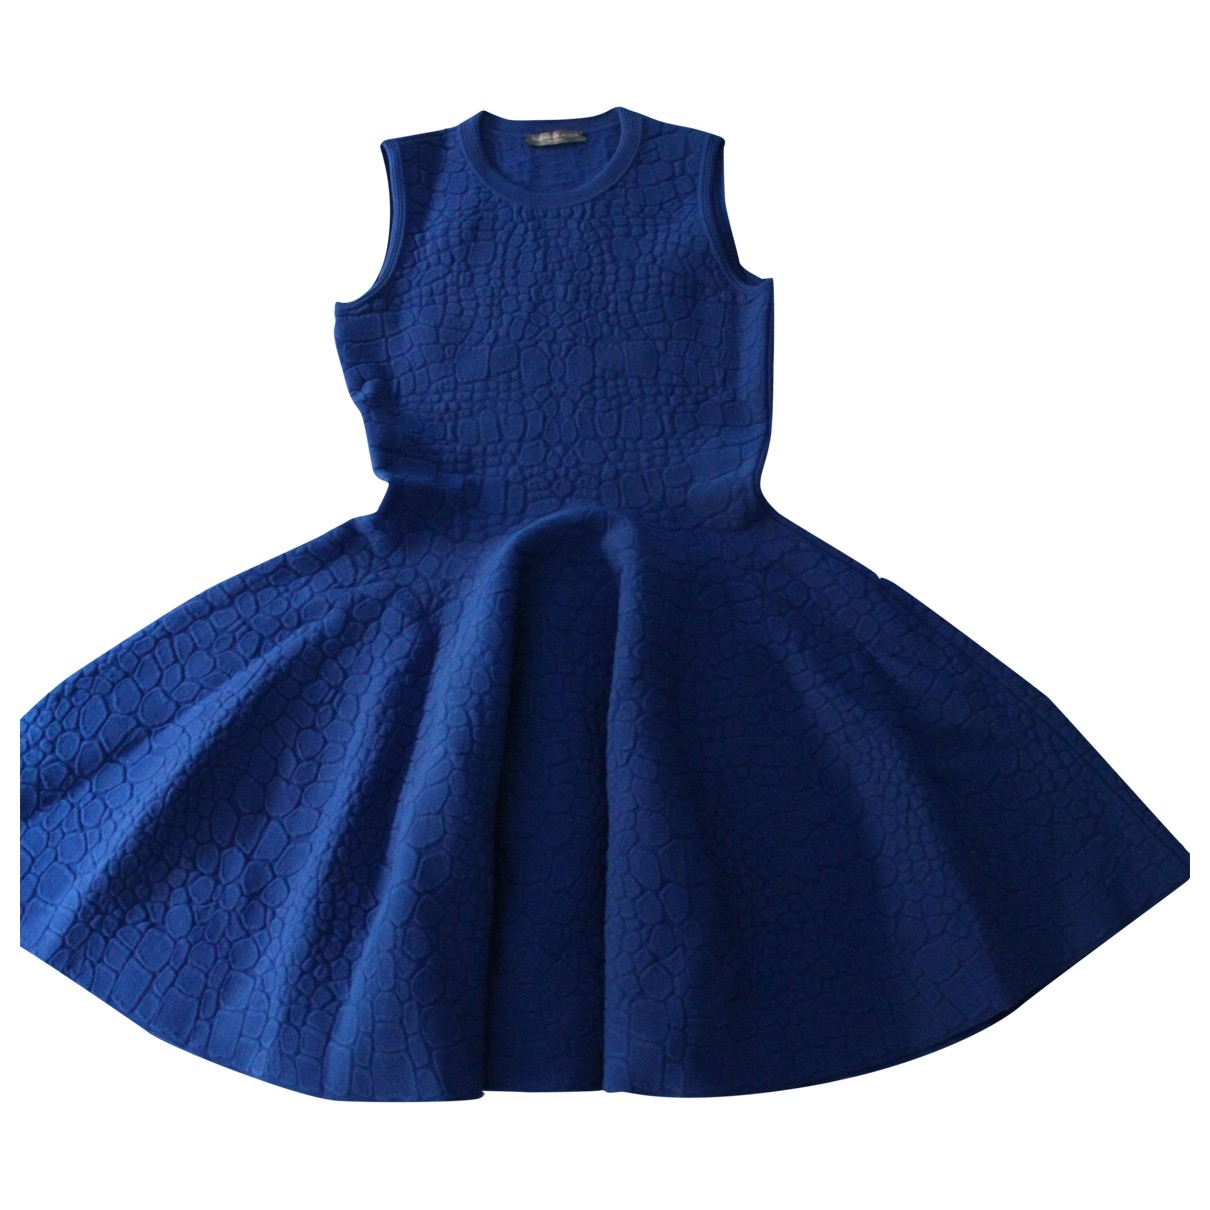 Alexander Mcqueen \N Blue dress for Women S International